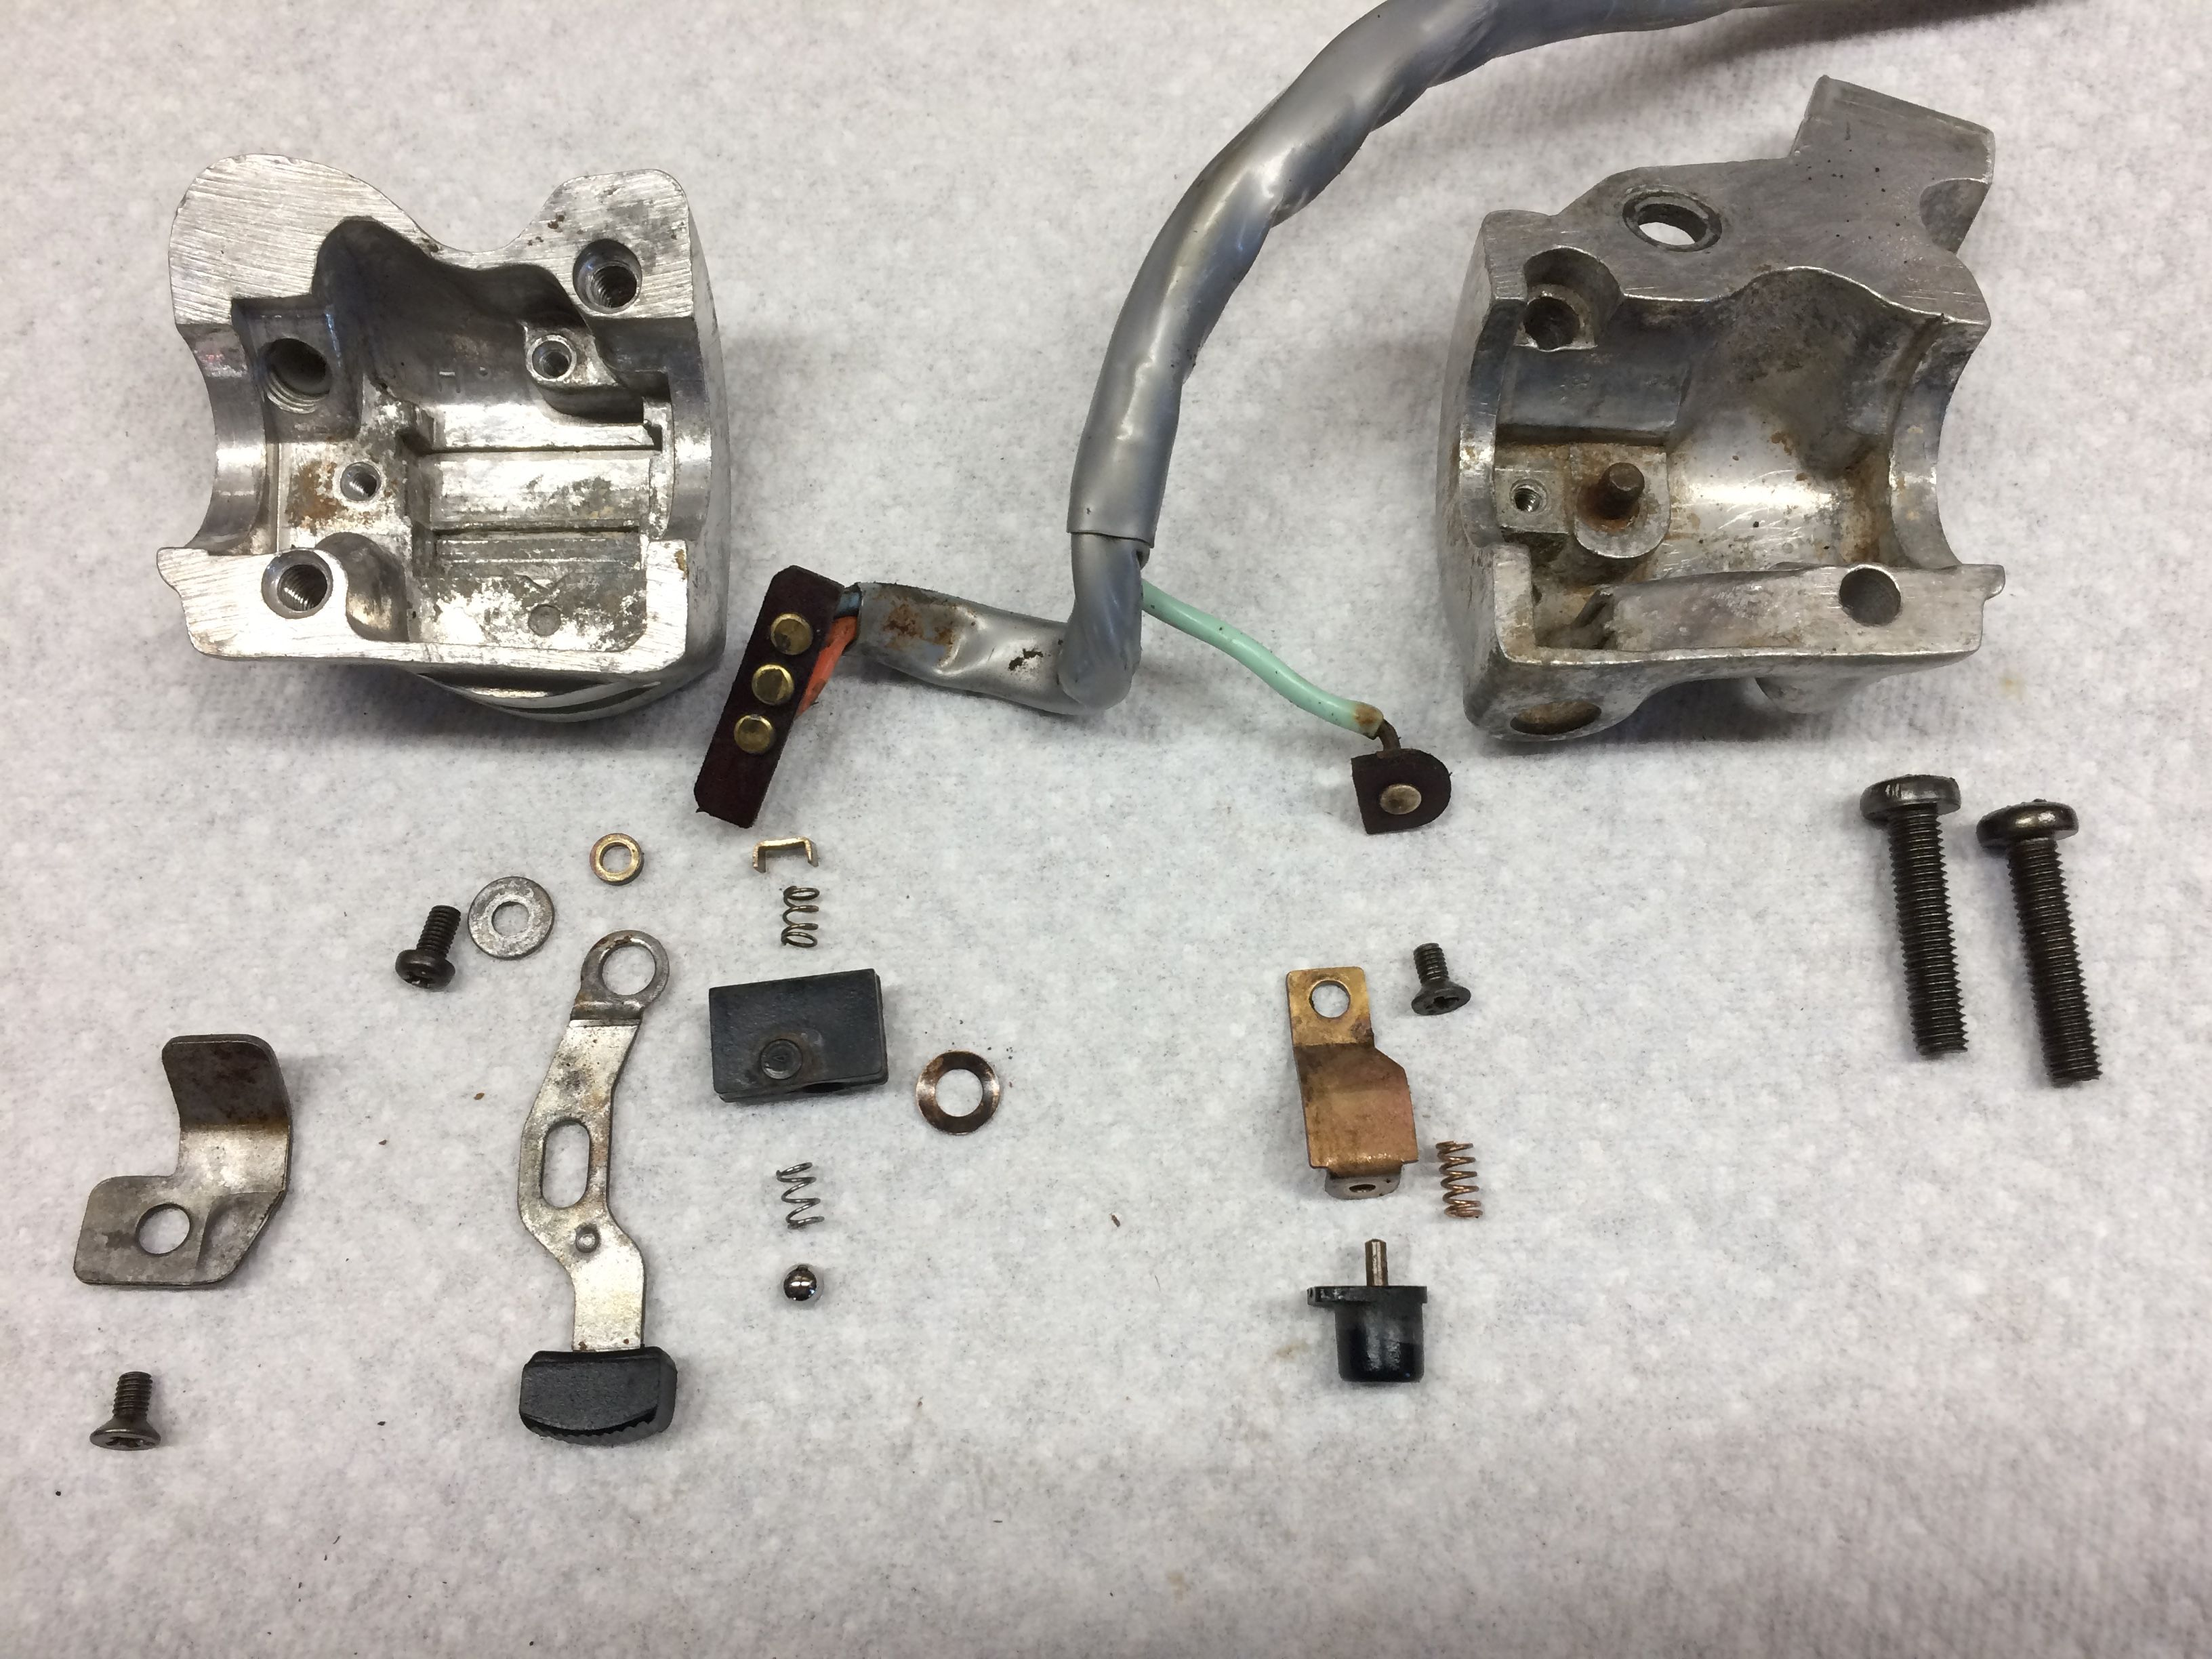 reassembling a honda ct90 horn and turn signal switch assembly may look difficult but it really isn t all that bad and i have provided detailed  [ 3264 x 2448 Pixel ]